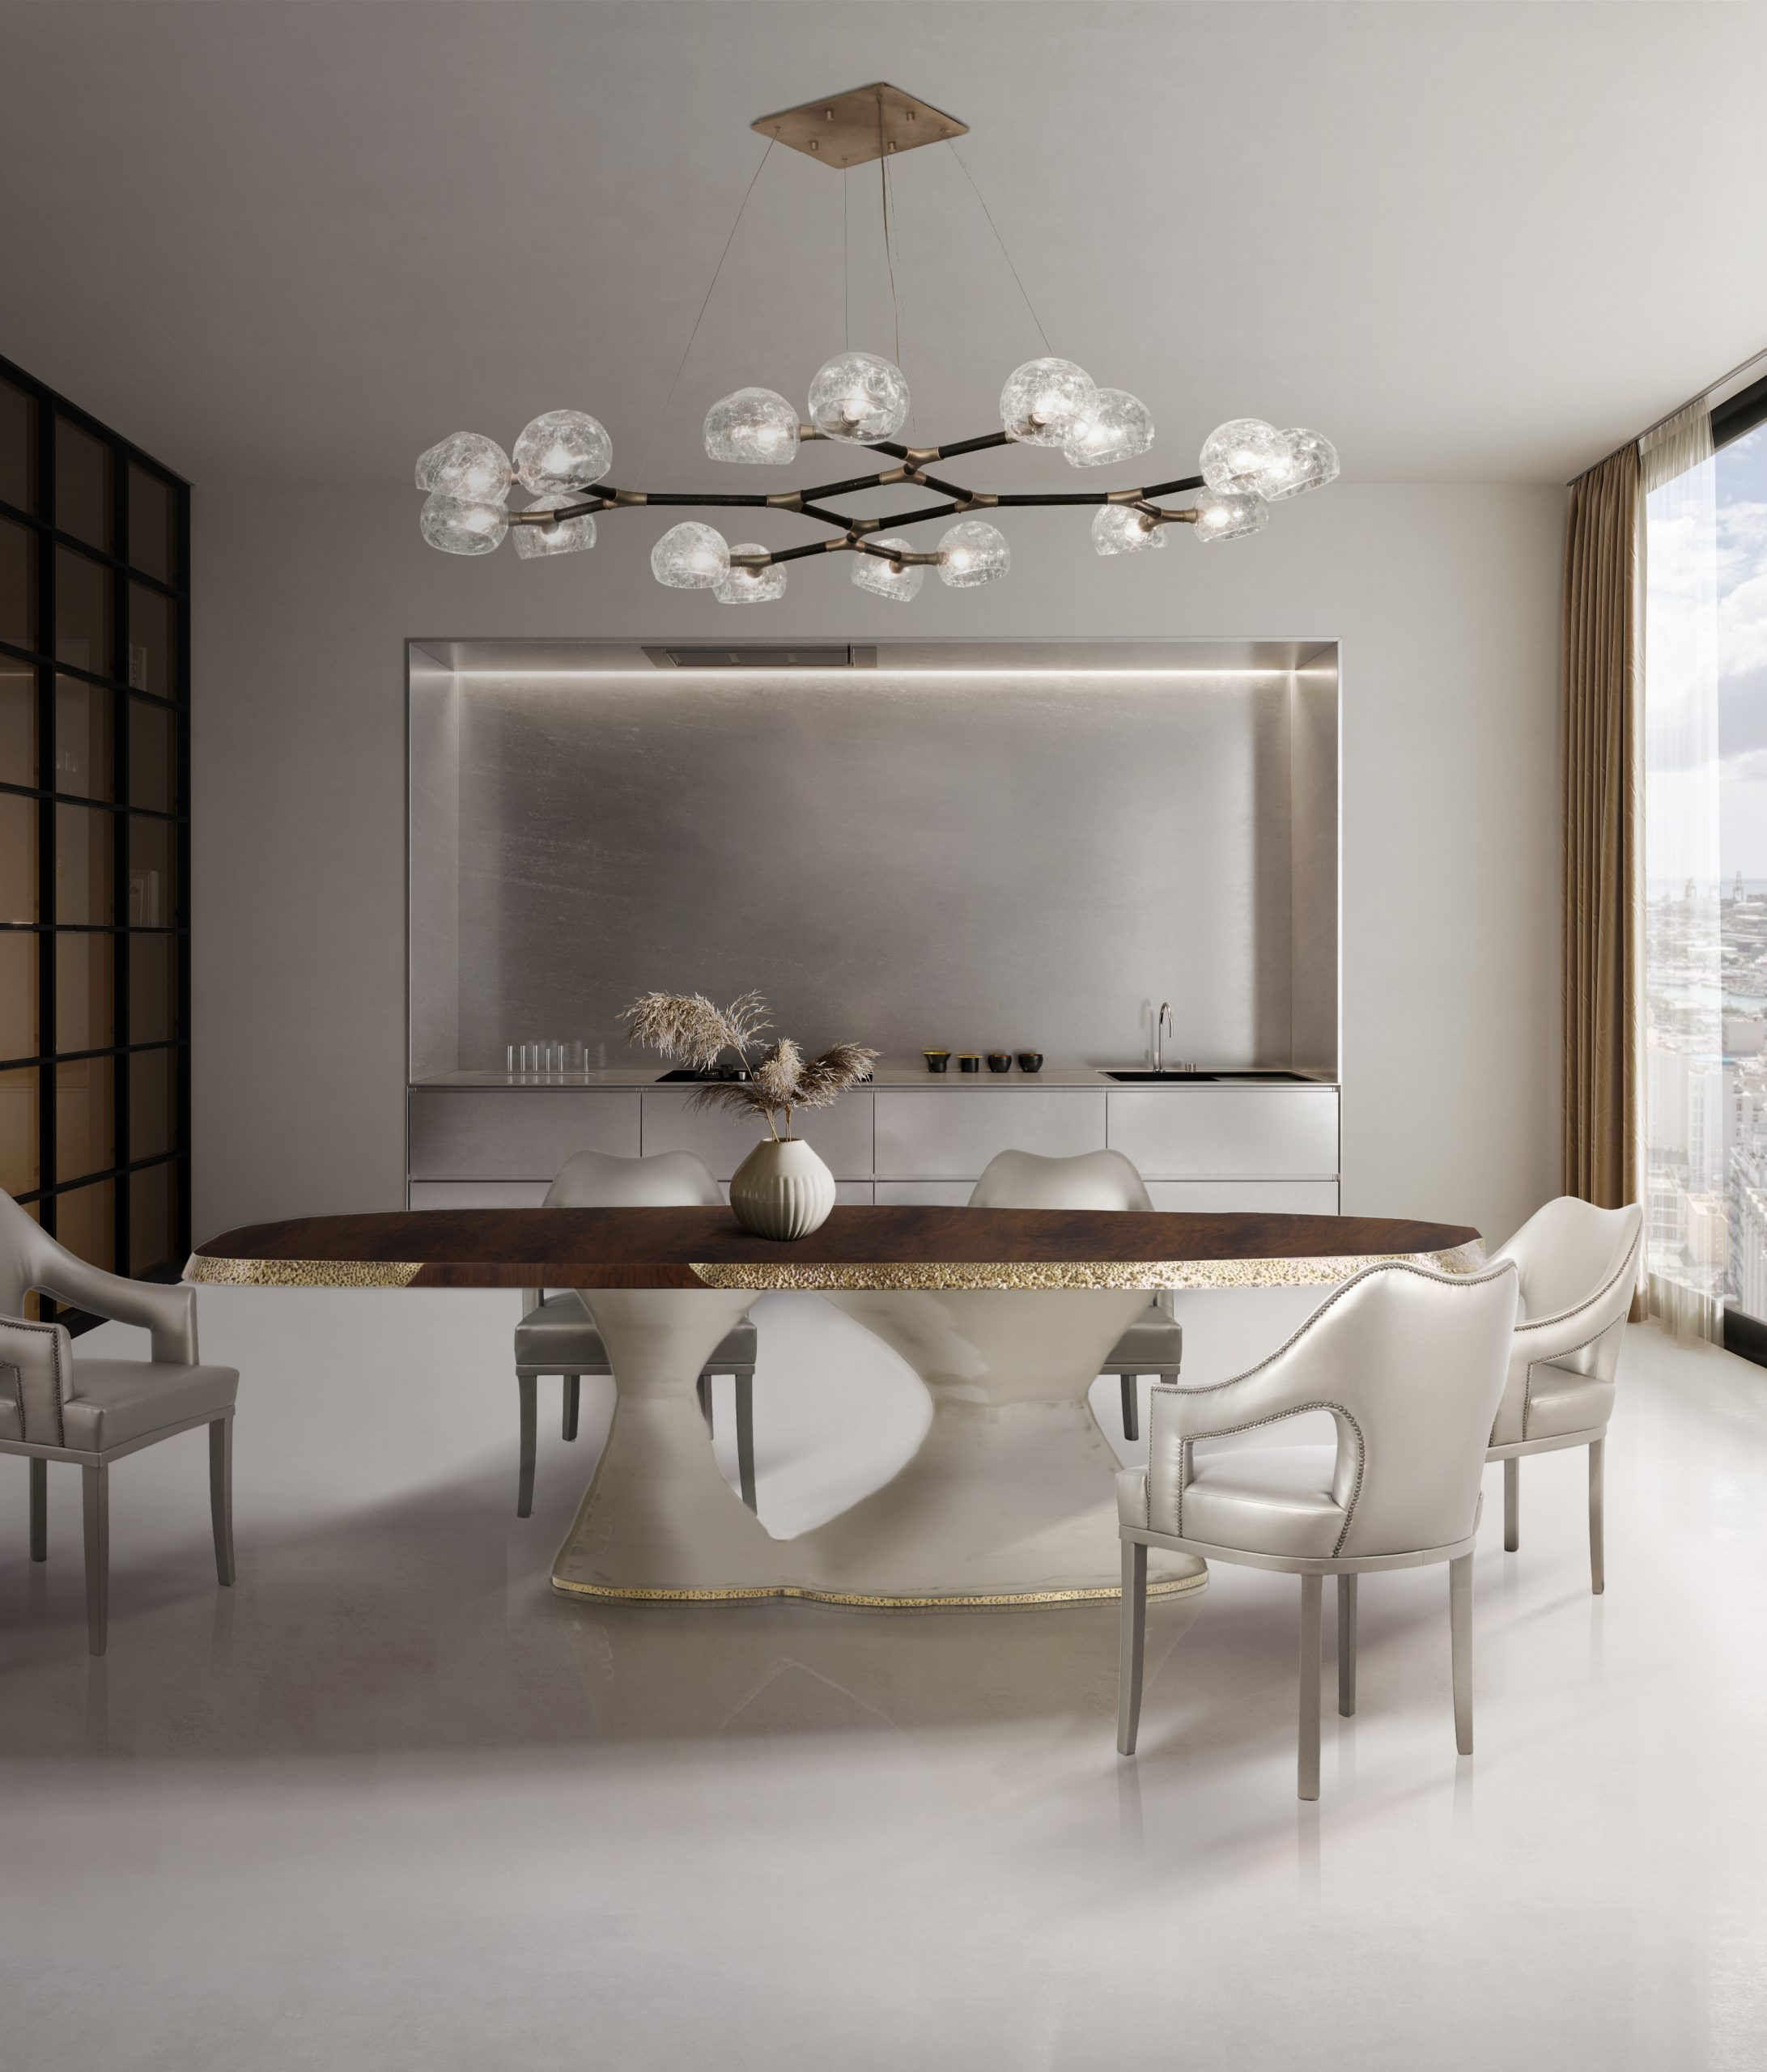 20 Dining Chairs You Will Need For A Modern Dining Room dining chairs 20 Dining Chairs You Will Need For A Modern Dining Room BB Plateau n20 Dining horus scaled